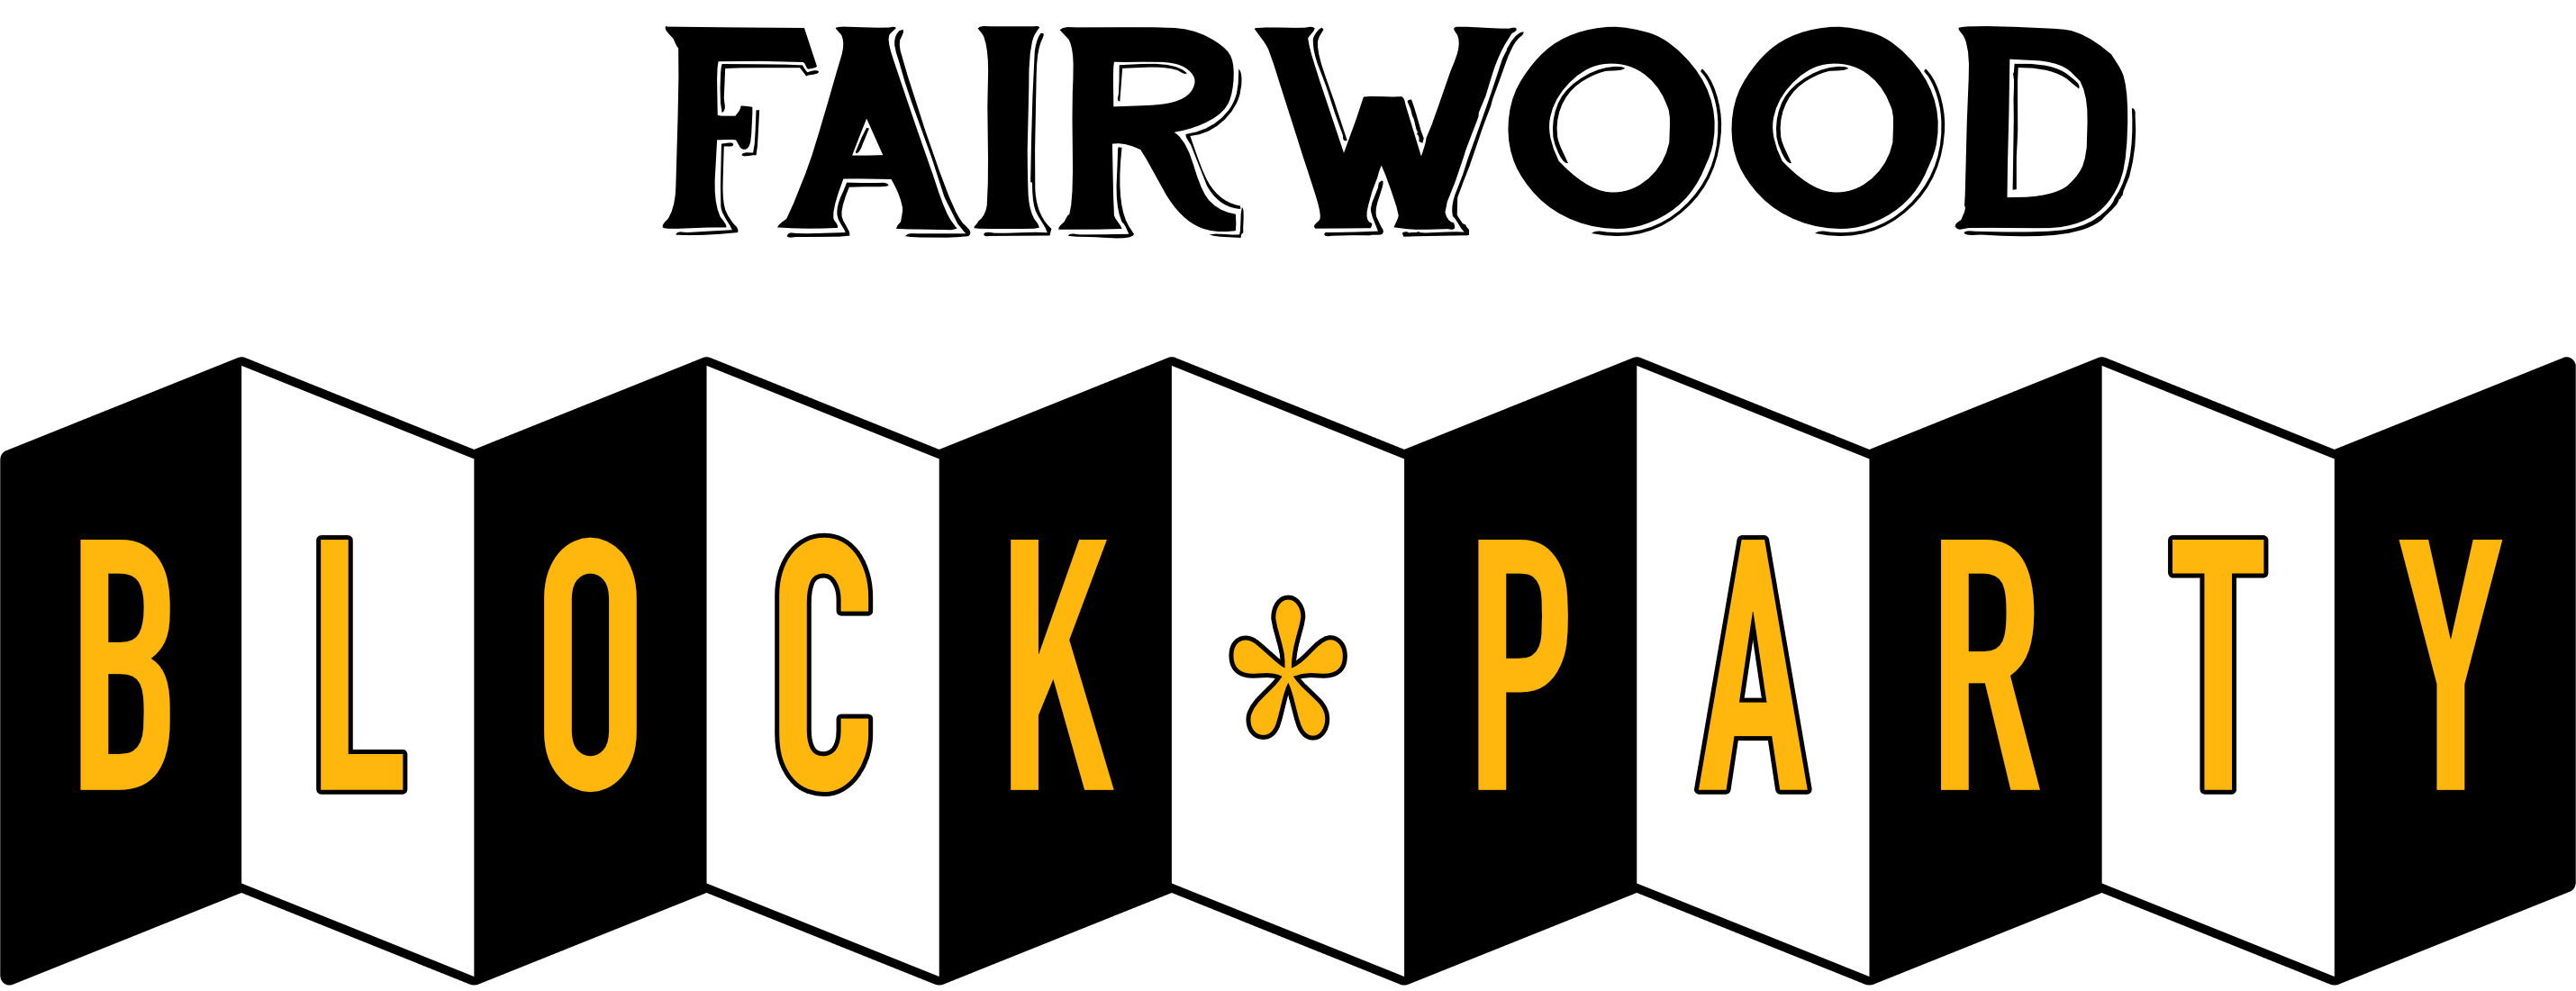 Block Party image